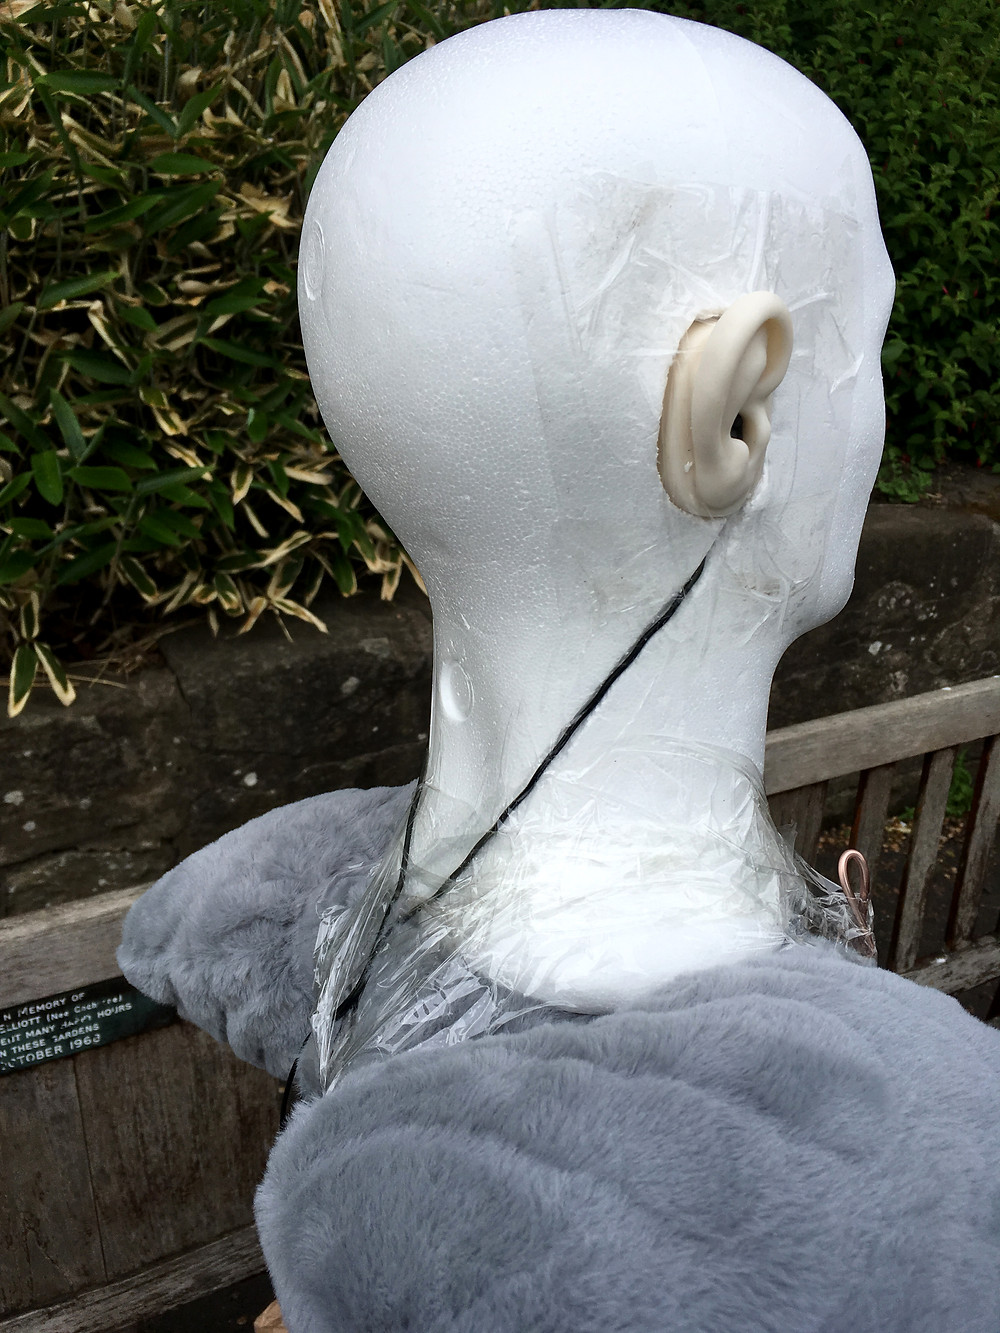 I also tried to emulate the sound absorption of an upper body by putting a pillow underneath the dummy head.